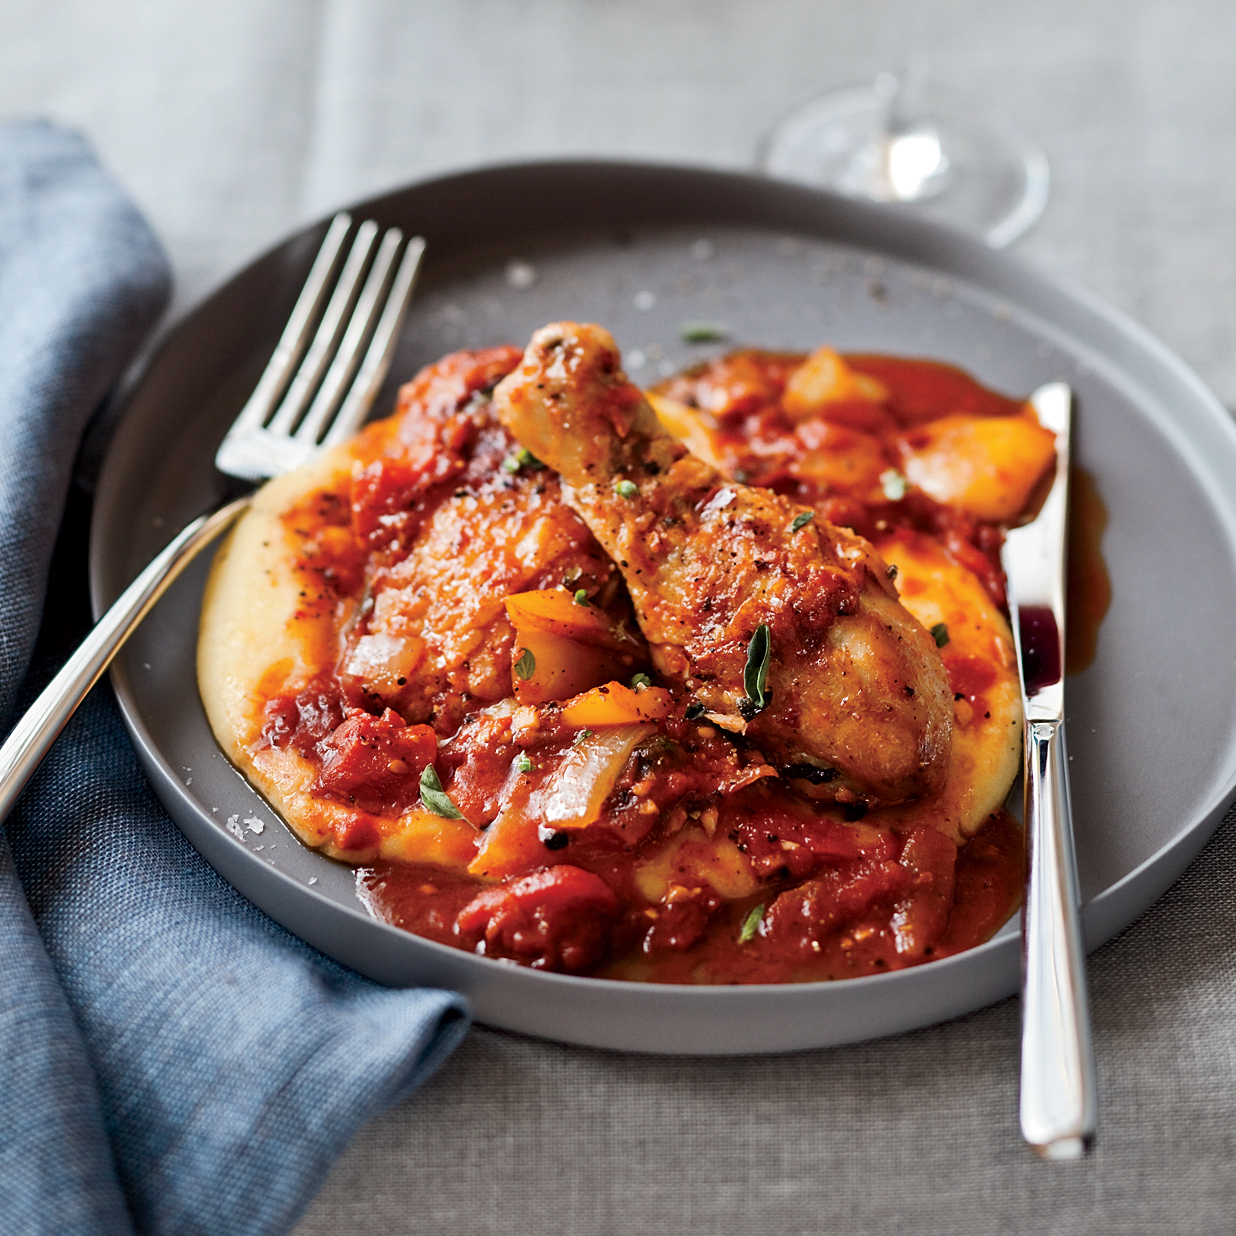 Braised Chicken All'Arrabbiata Recipe - Robert Holt